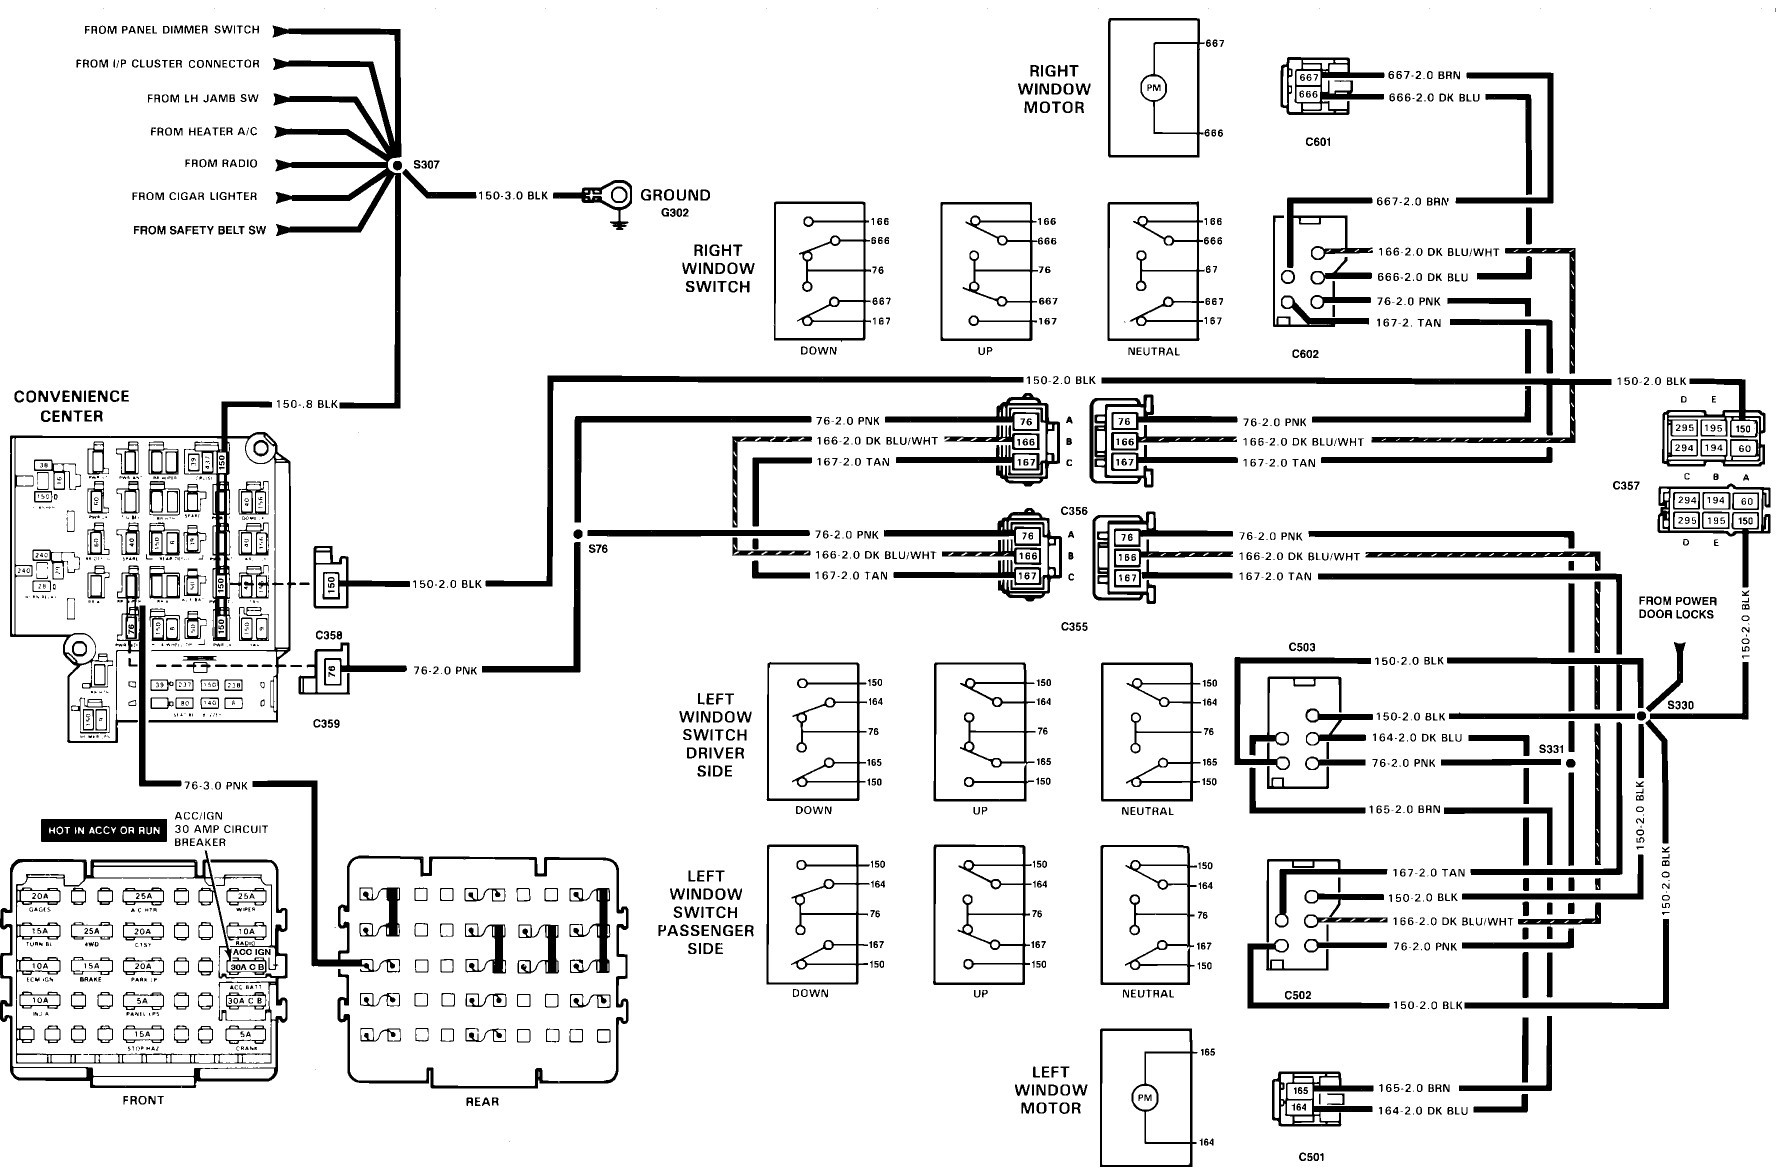 2008 Gmc Sierra Wiring Diagram 2008 Gmc Sierra Parts